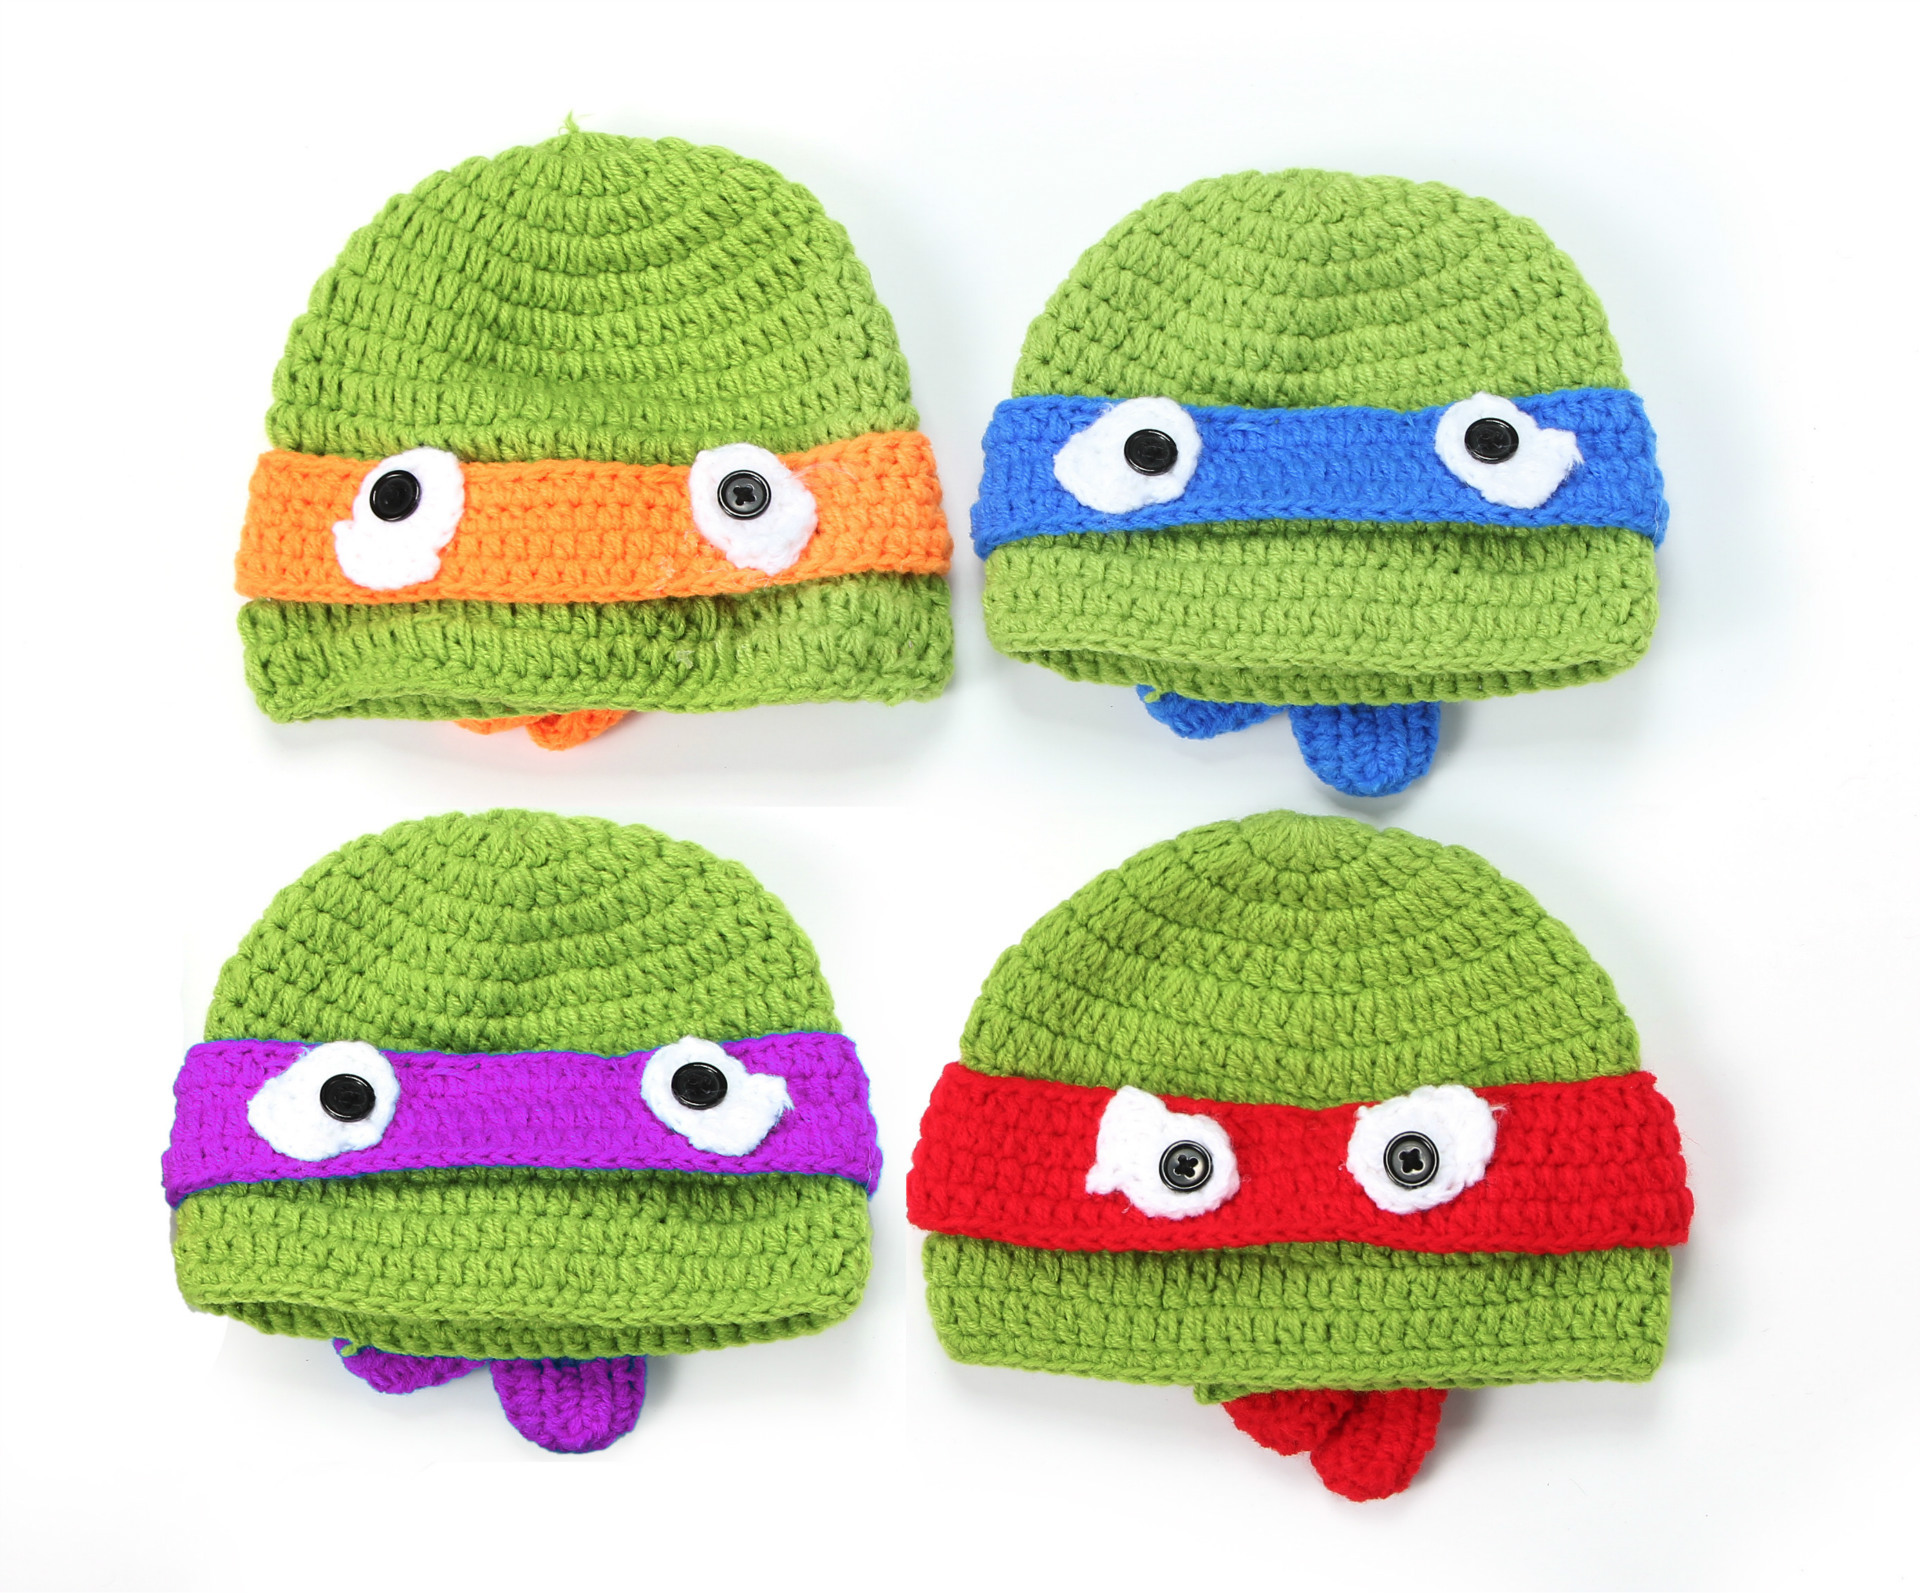 f97ca4f9d4e Buy Hand Woven Baby Hat Cartoon Boy Hat Child Knitted Hats Baby Accessories  Baby Photo Props Crochet Patterns Free Cap Children in Cheap Price on  Alibaba. ...